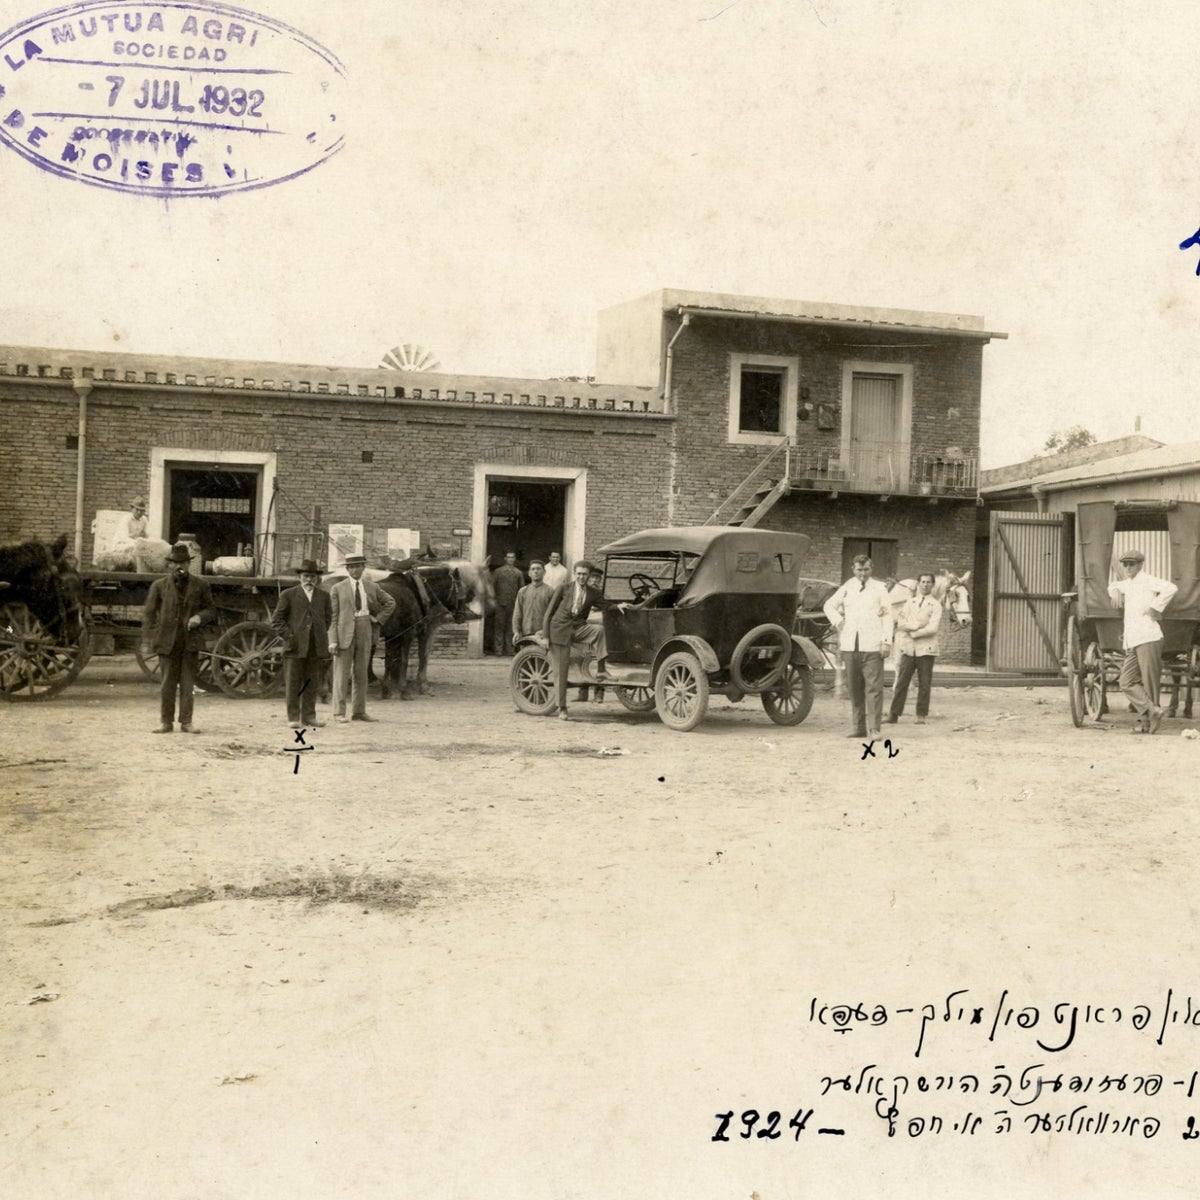 The Moises Ville collective dairy, mid-1930s.